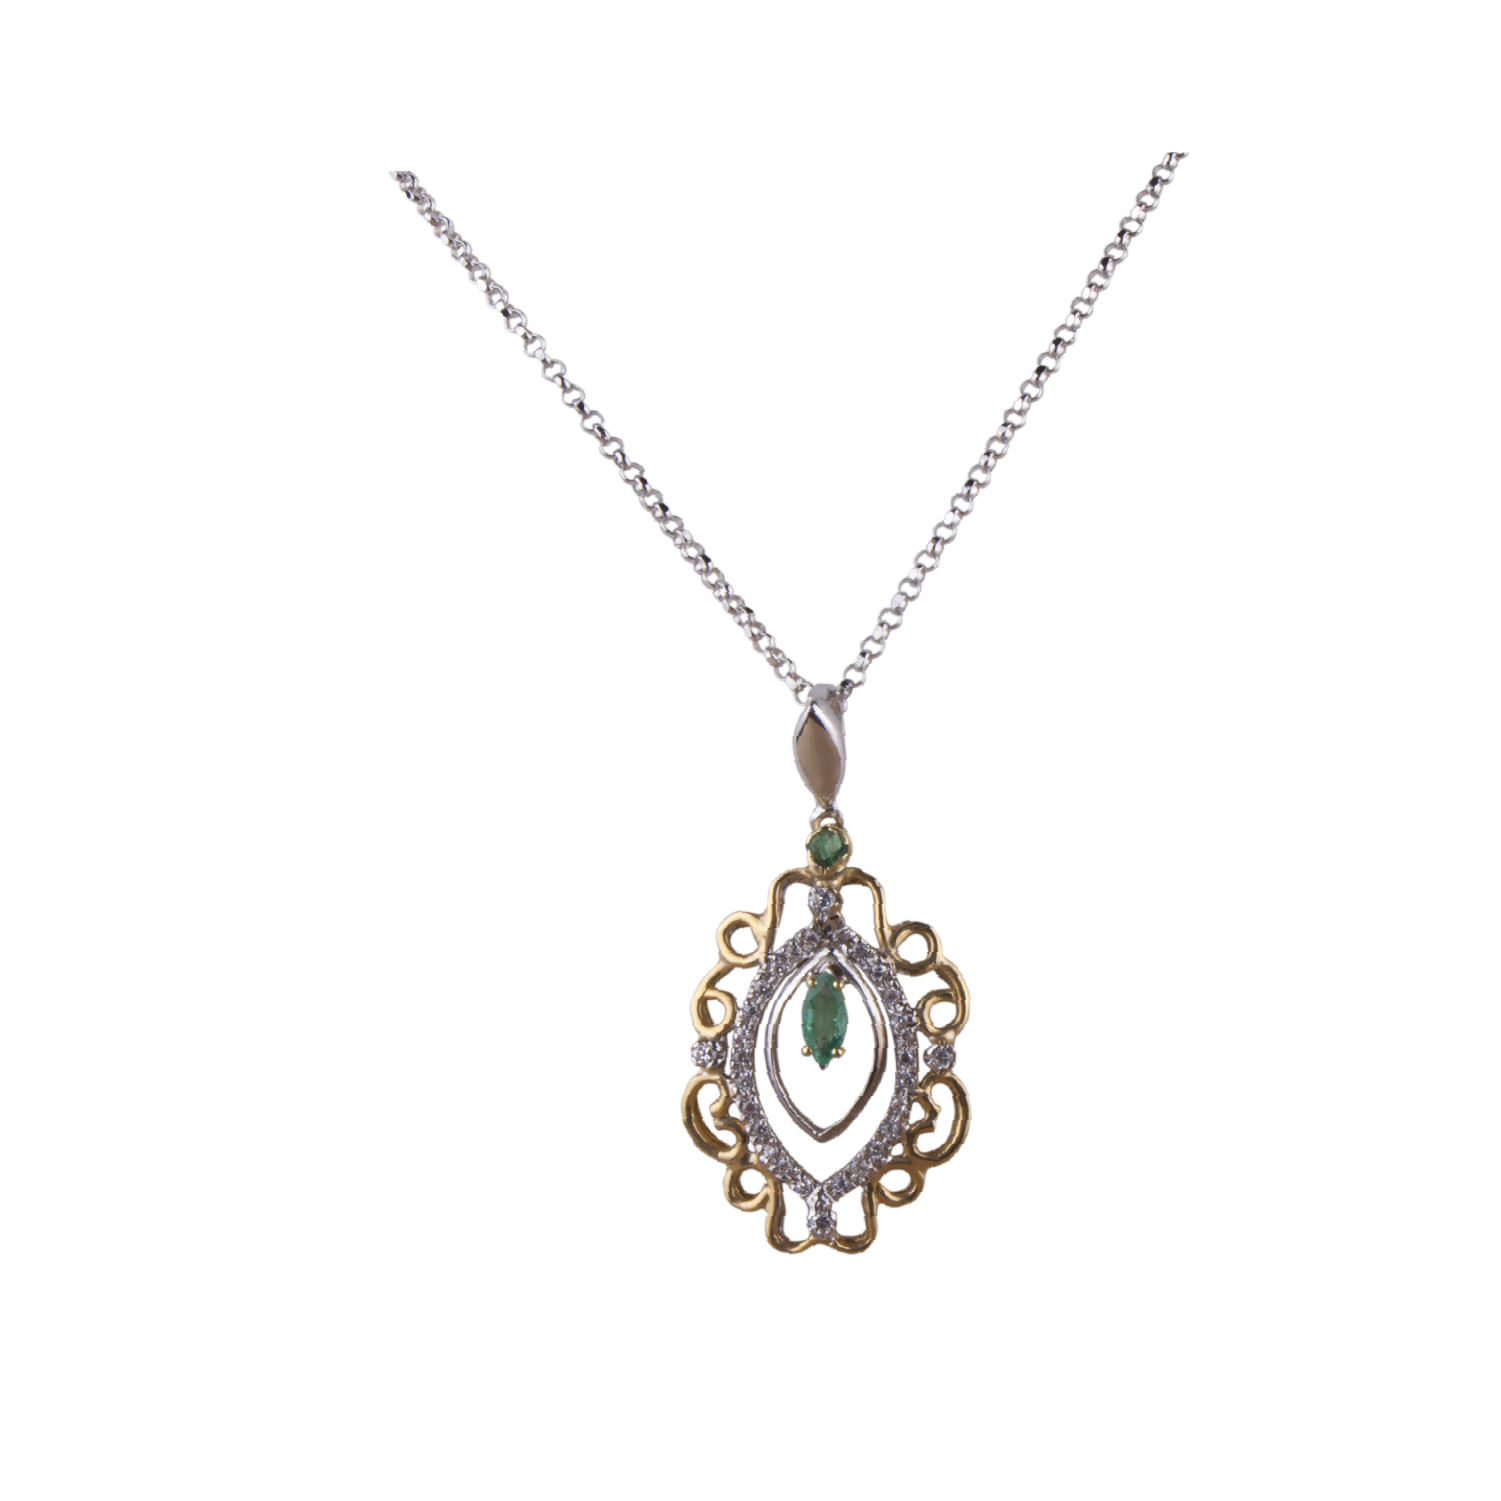 COLLIER 30032018-2